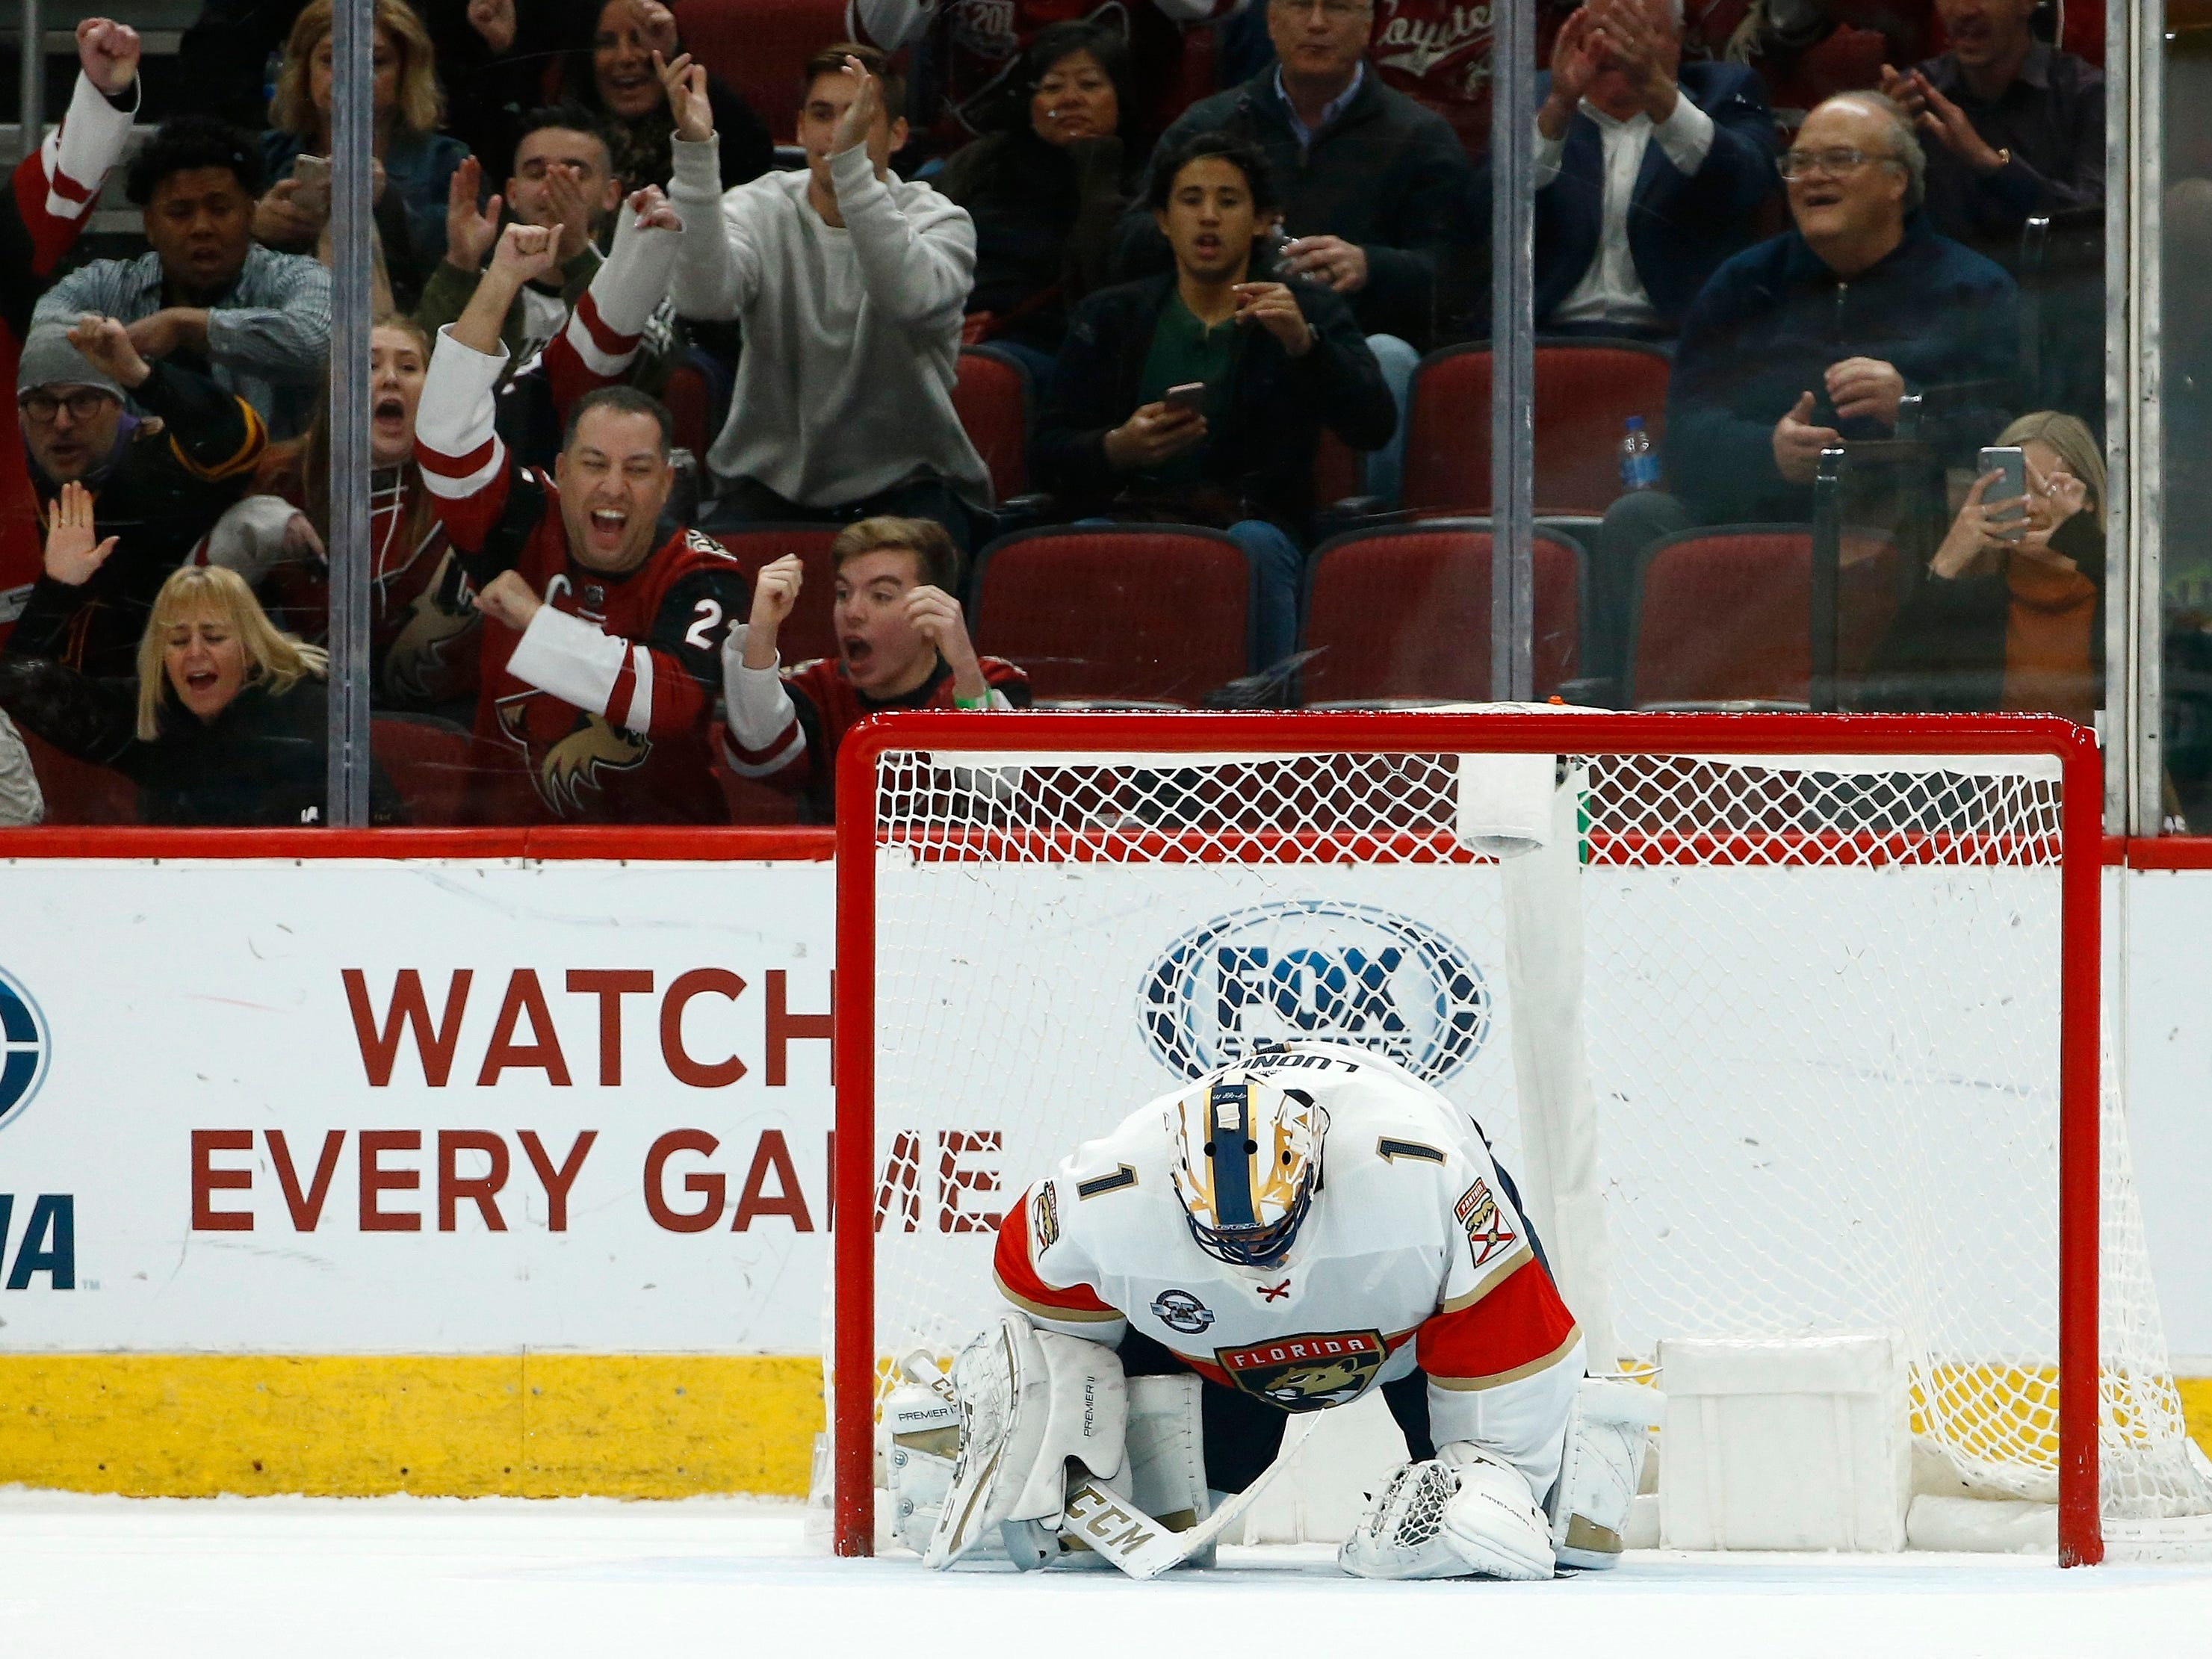 Arizona Coyotes fans cheer a goal by Coyotes' Nick Cousins against Florida Panthers goaltender Roberto Luongo (1) during the shootout jn an NHL hockey game Tuesday, Feb. 26, 2019, in Glendale, Ariz. The Coyotes won 4-3.